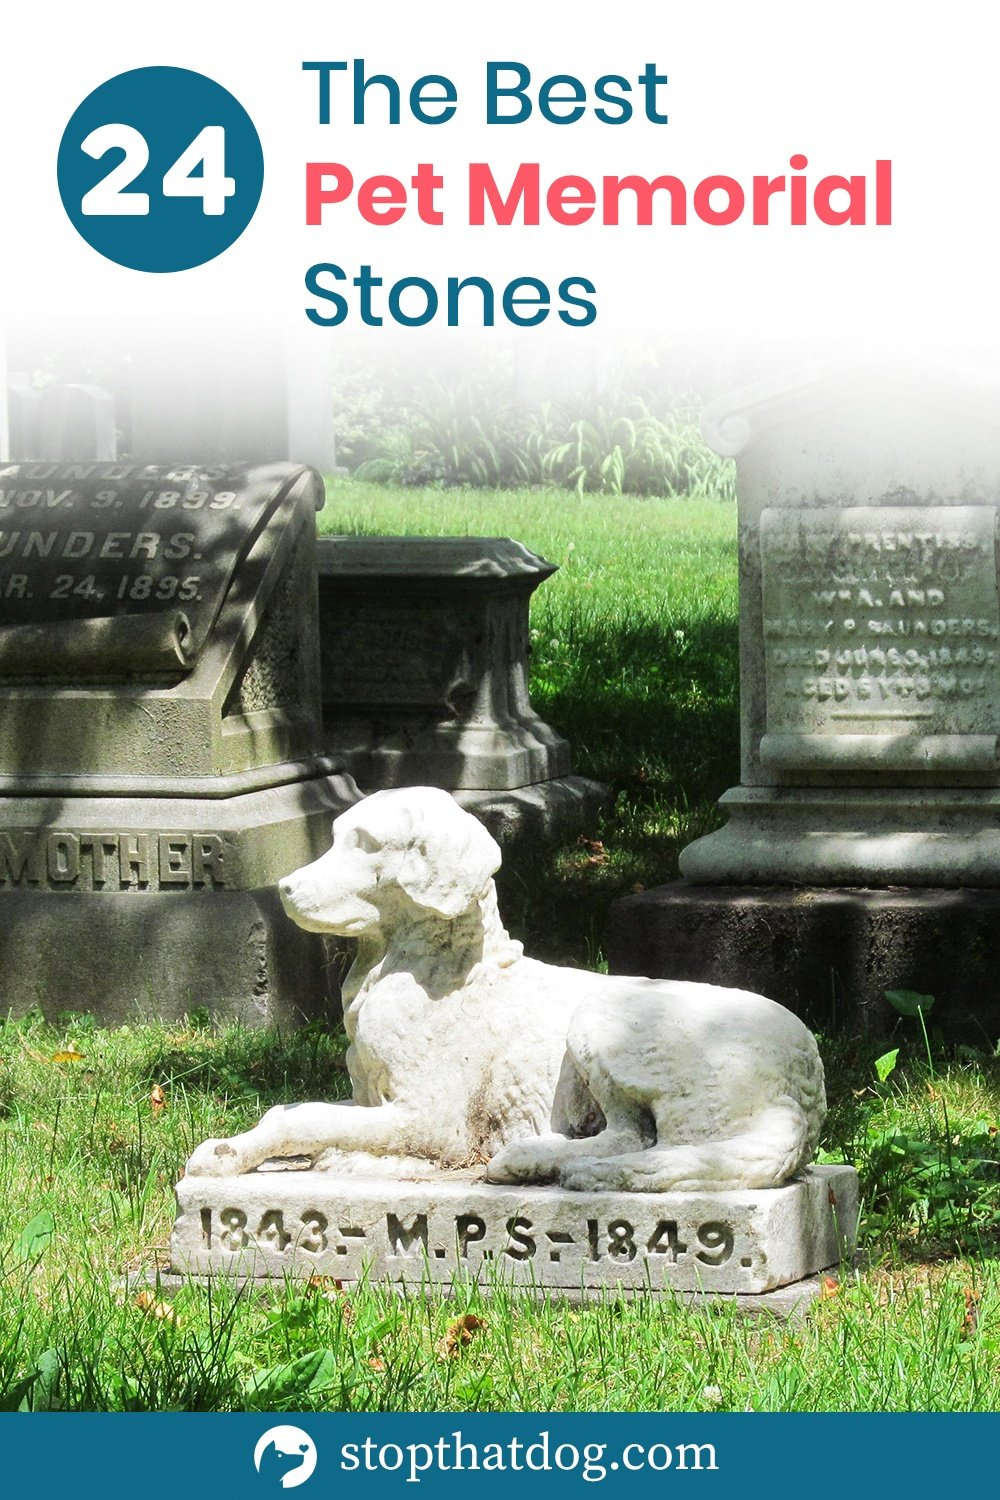 The Best Pet Memorial Stones – A Perfect Way To Honor Your Dog